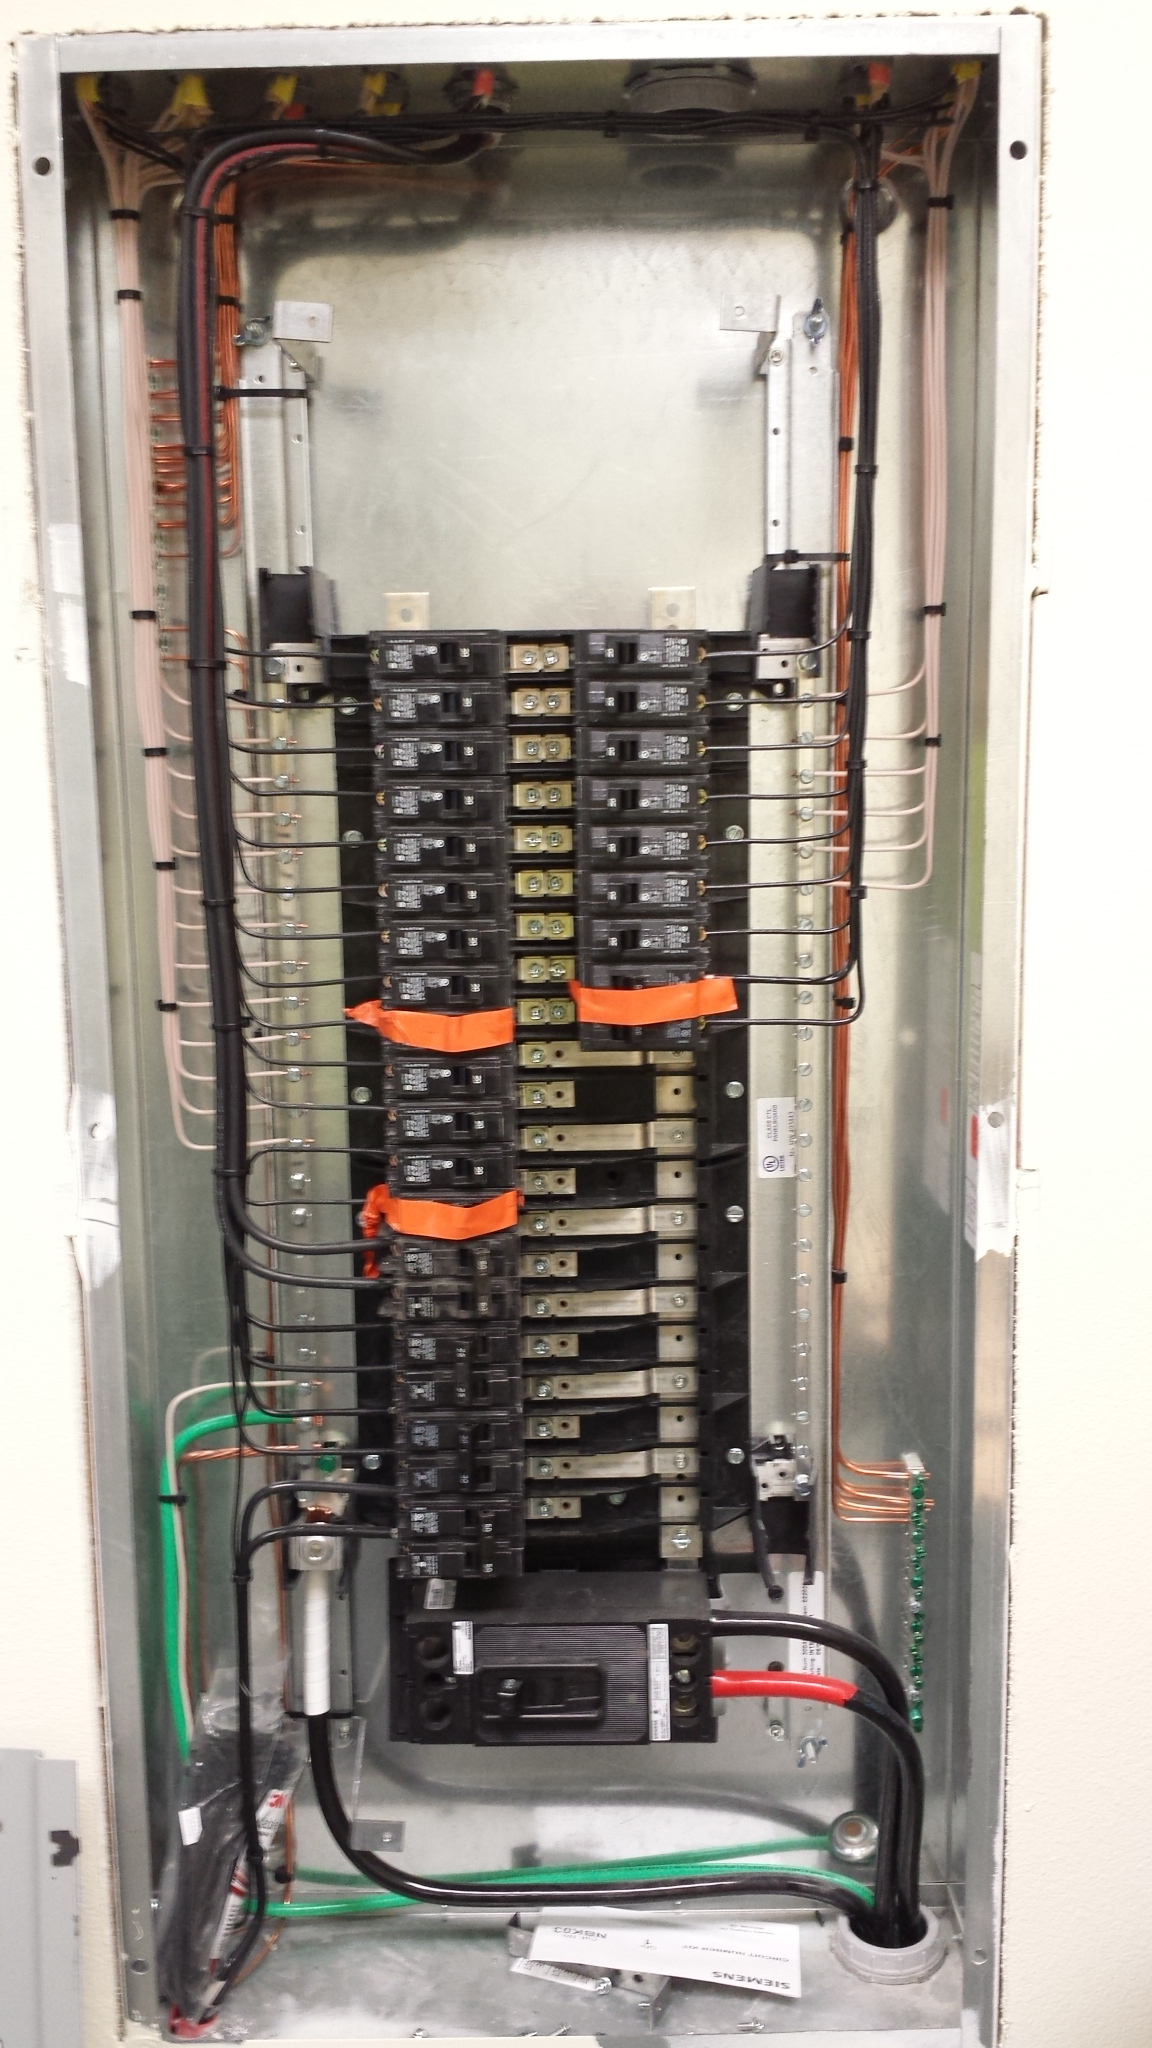 Romex stackers - Page 2 - Electrician Talk - Professional Electrical ...